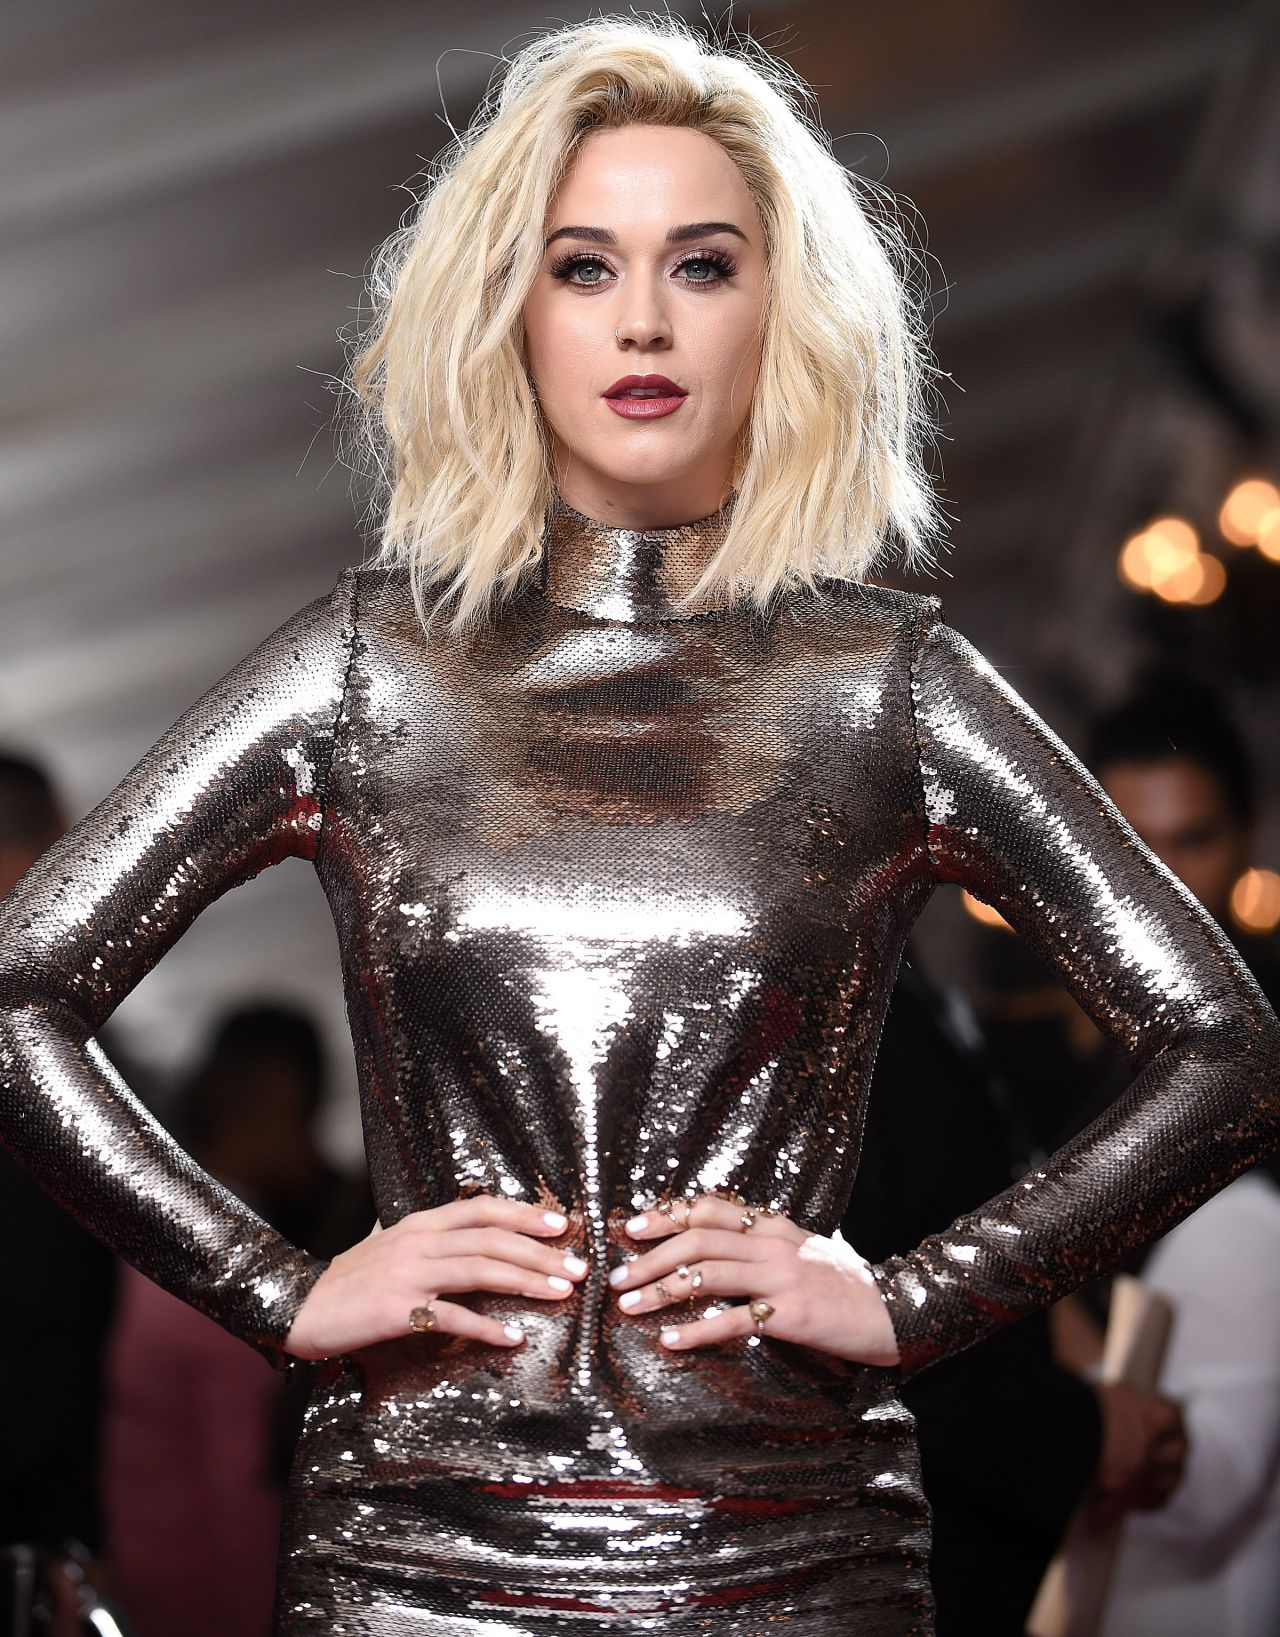 Katy Perry On Red Carpet GRAMMY Awards In Los Angeles 2